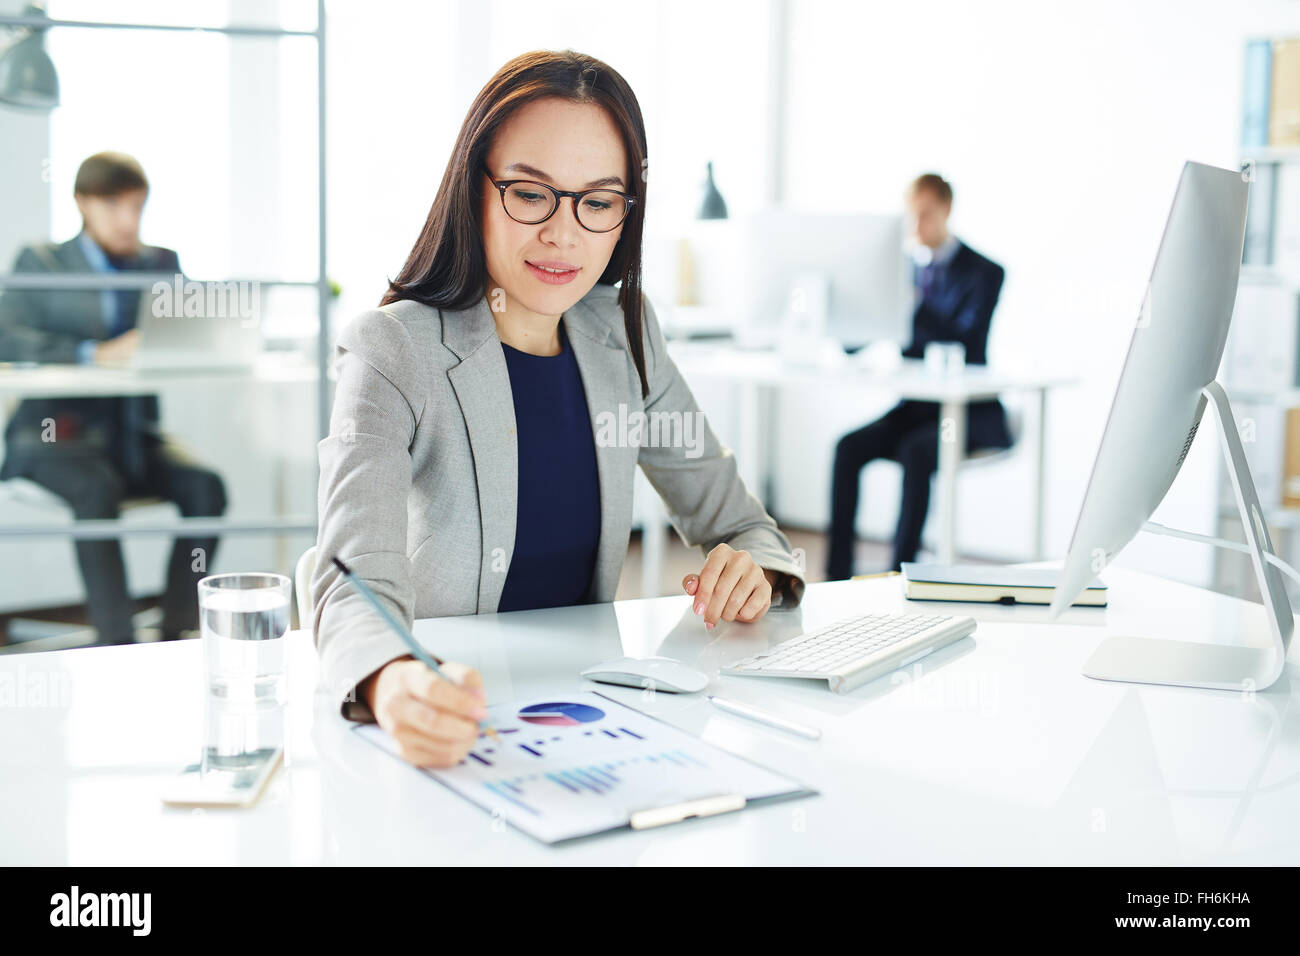 Pretty secretary analyzing data at workplace in front of computer - Stock Image